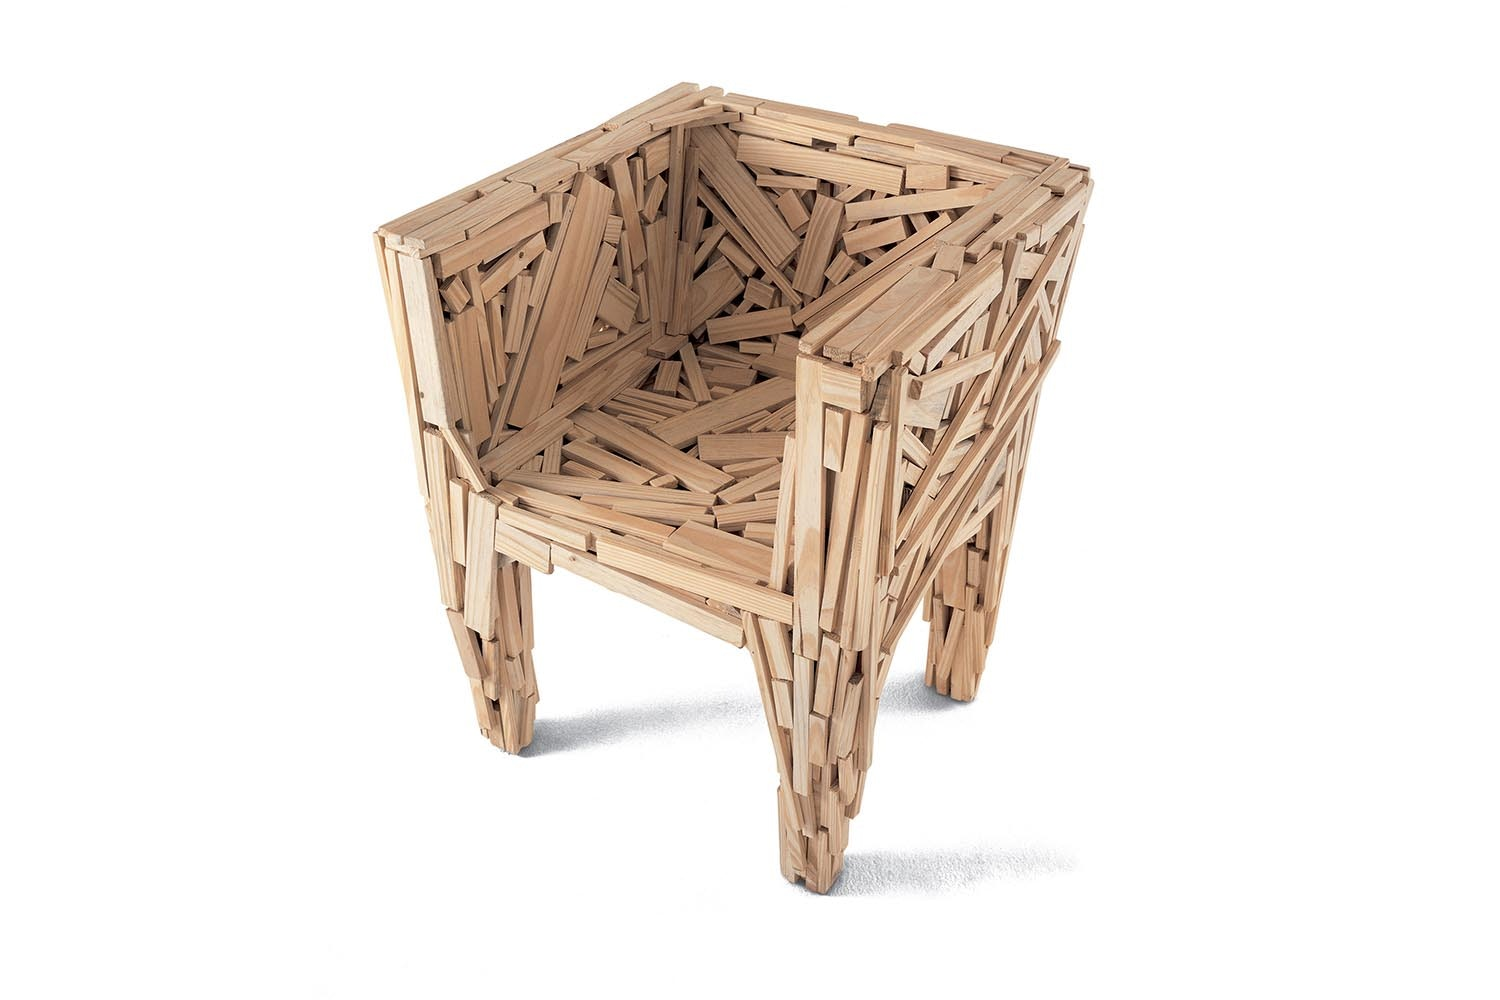 Favela Armchair by F. e H. Campana for Edra